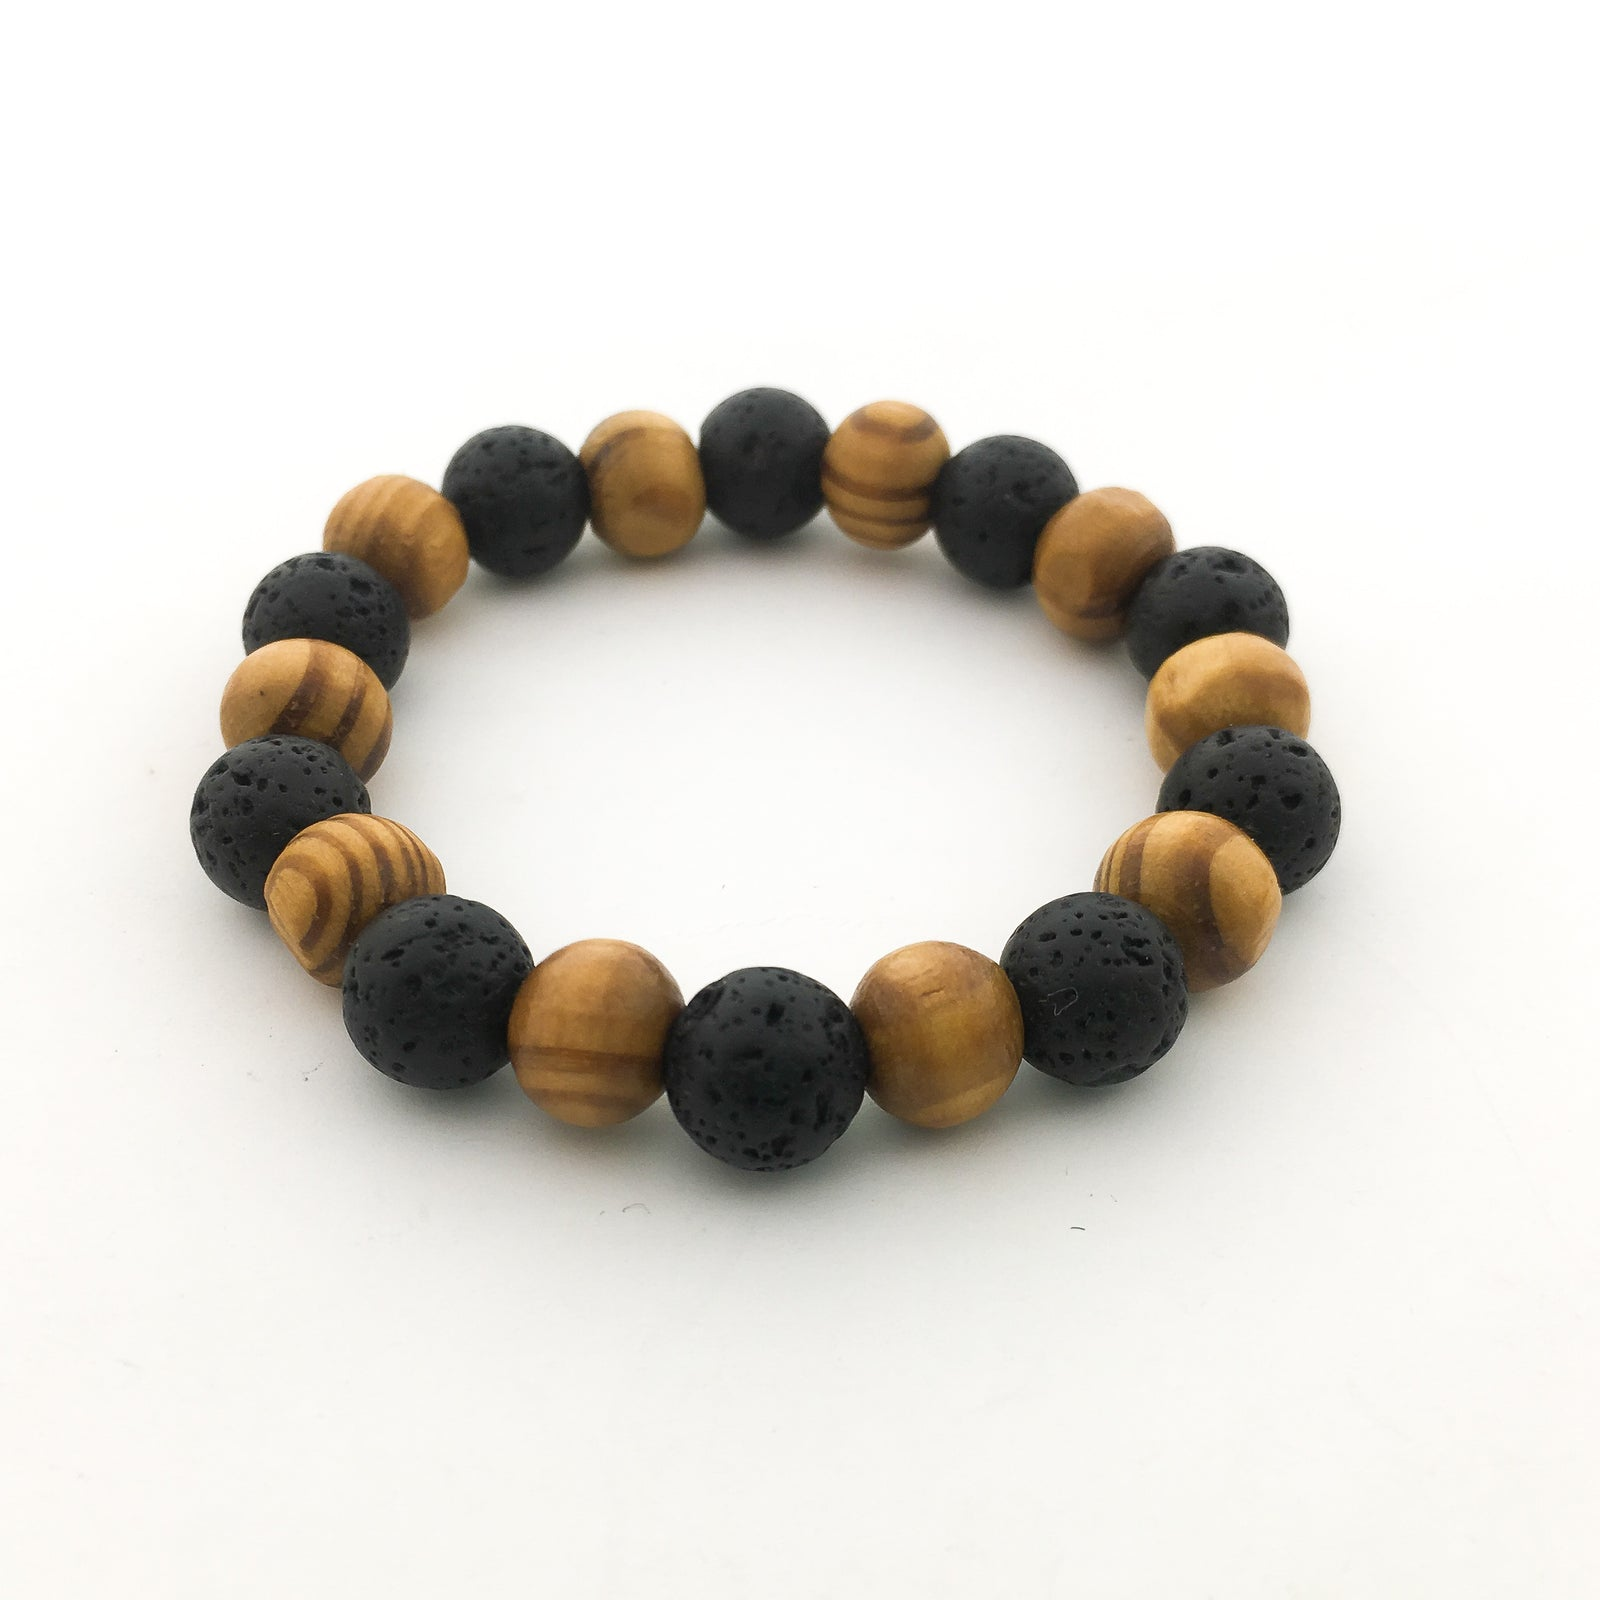 SINGLE PATTERN LAVA & WOOD DIFFUSER BRACELET | KIDS